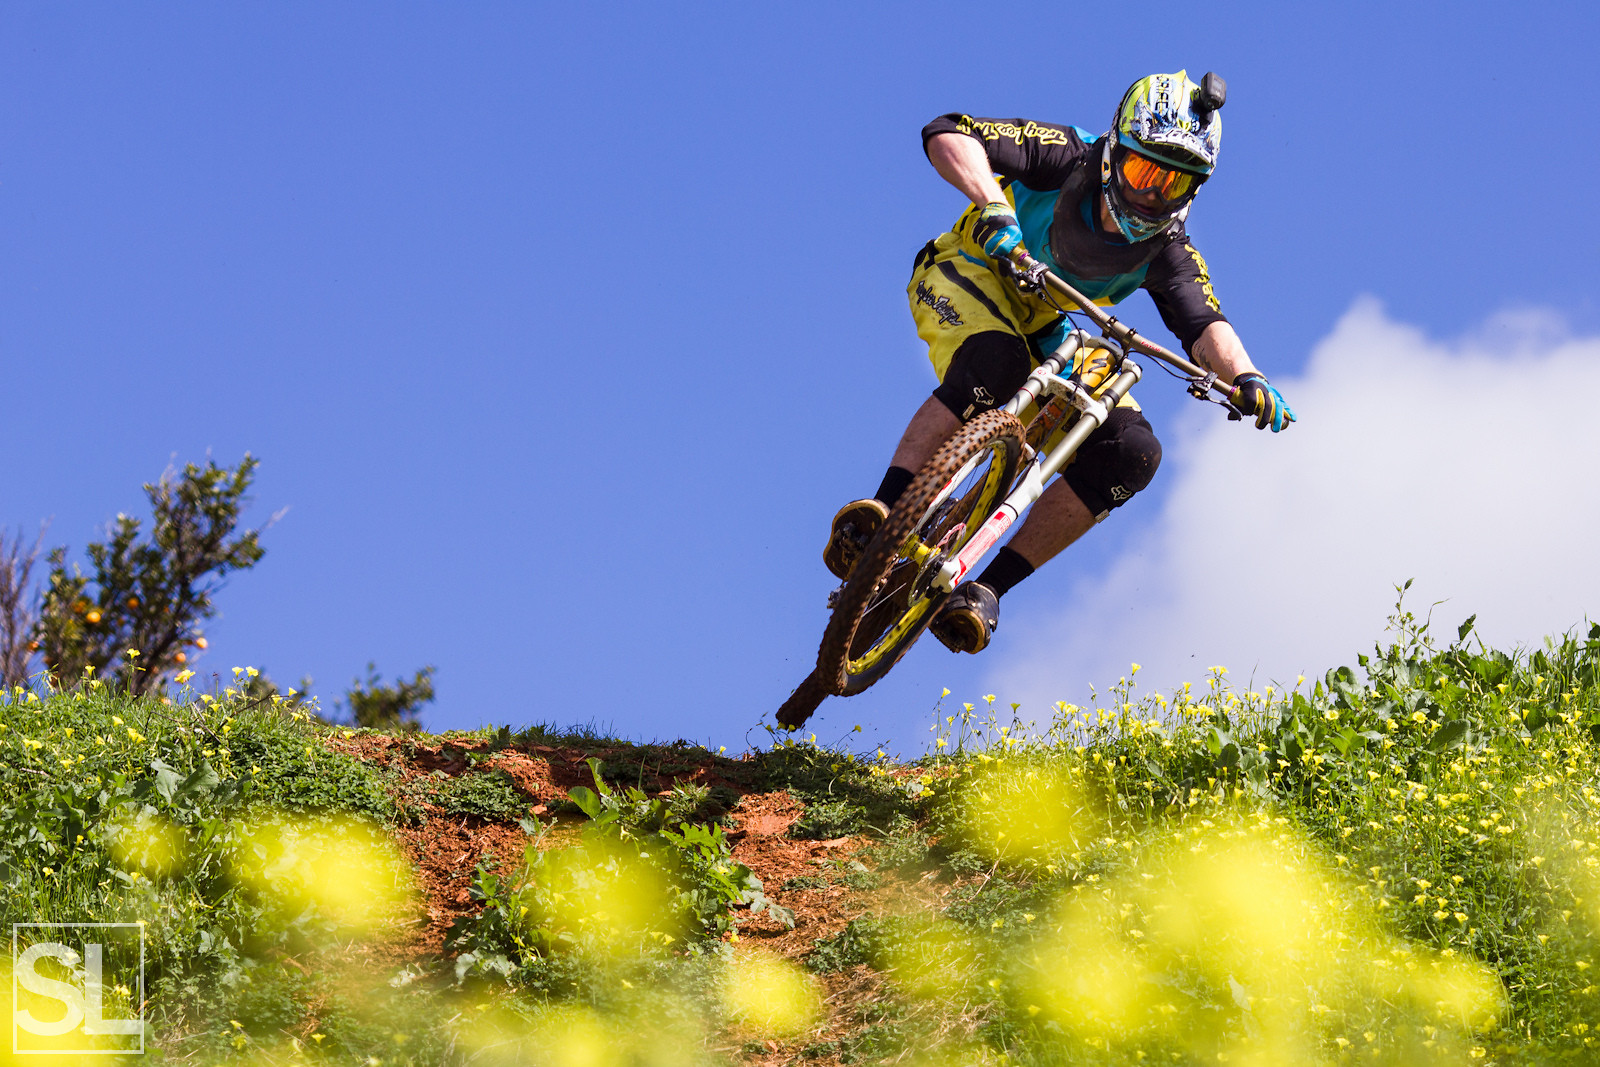 get low - Chamakazi - Mountain Biking Pictures - Vital MTB